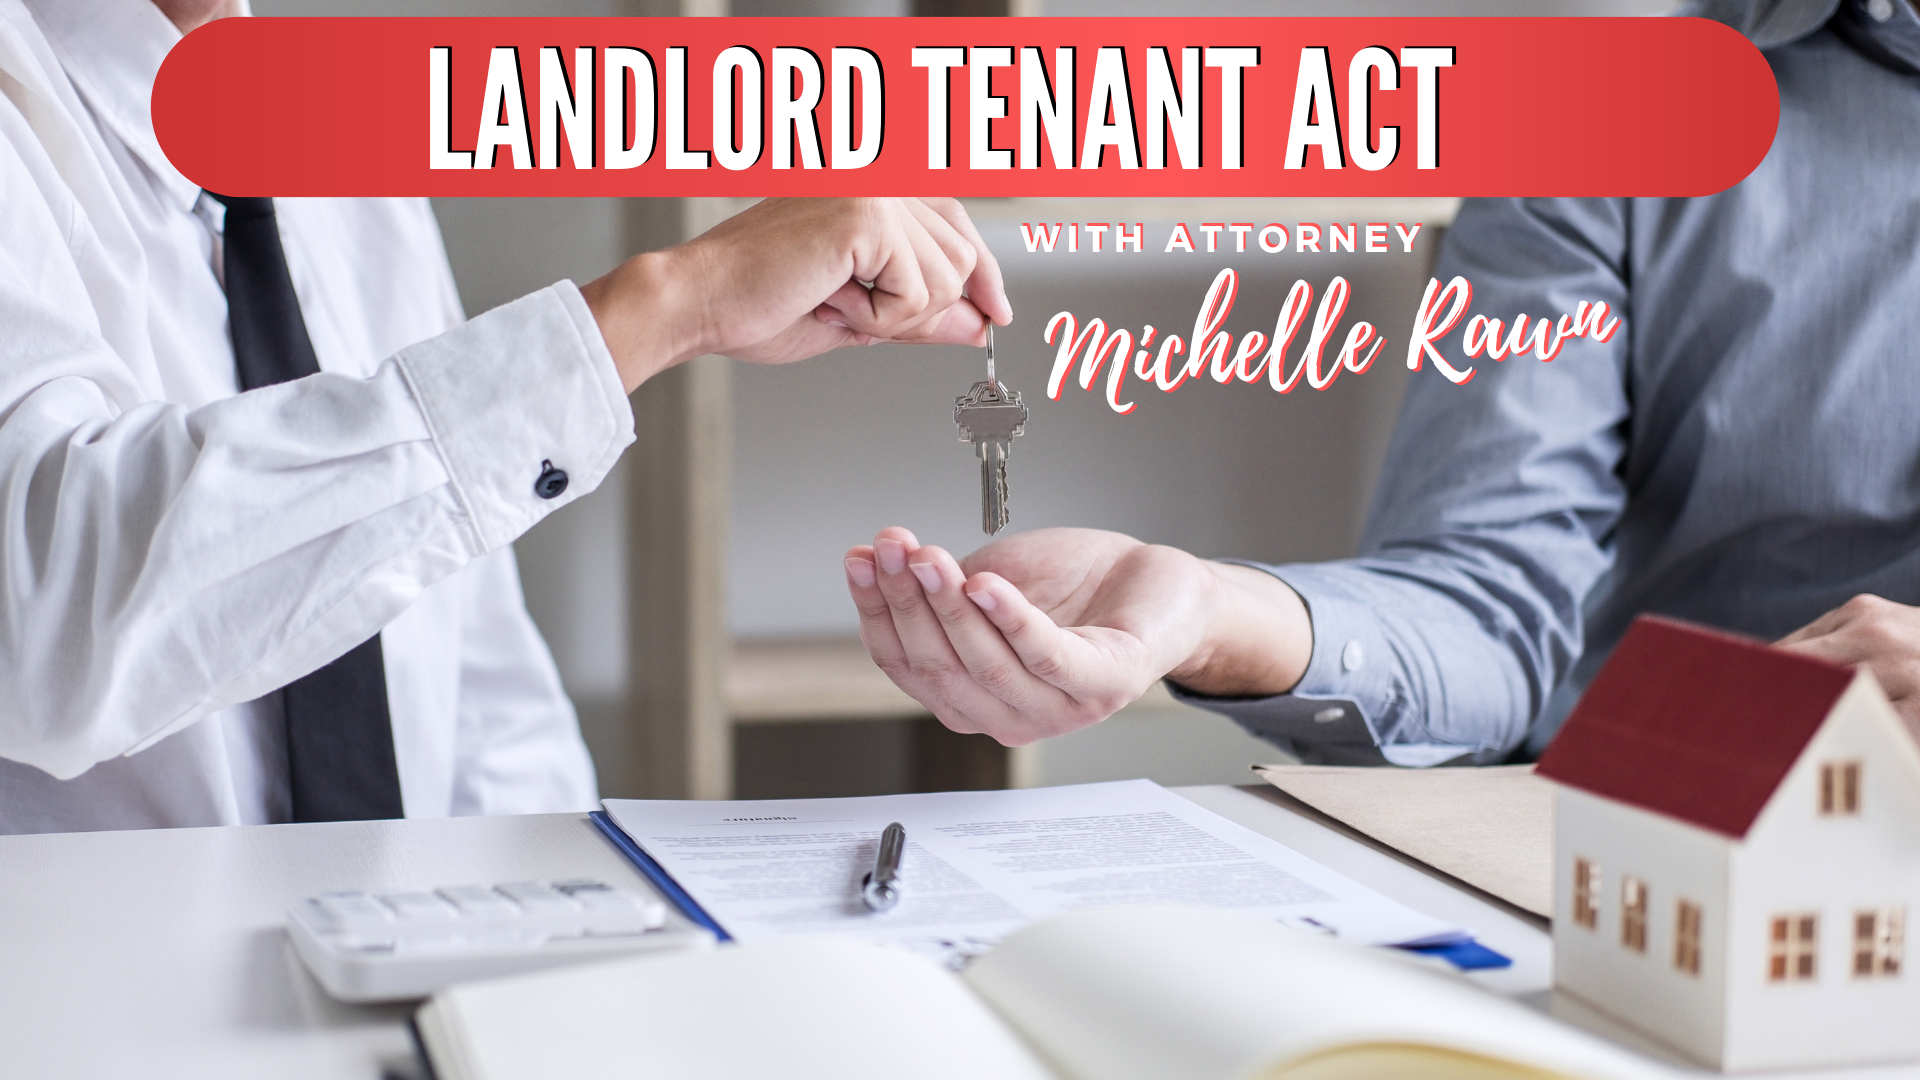 Graphic by Nina Musgrave: Landlord Tenant Act with Michelle Rawn